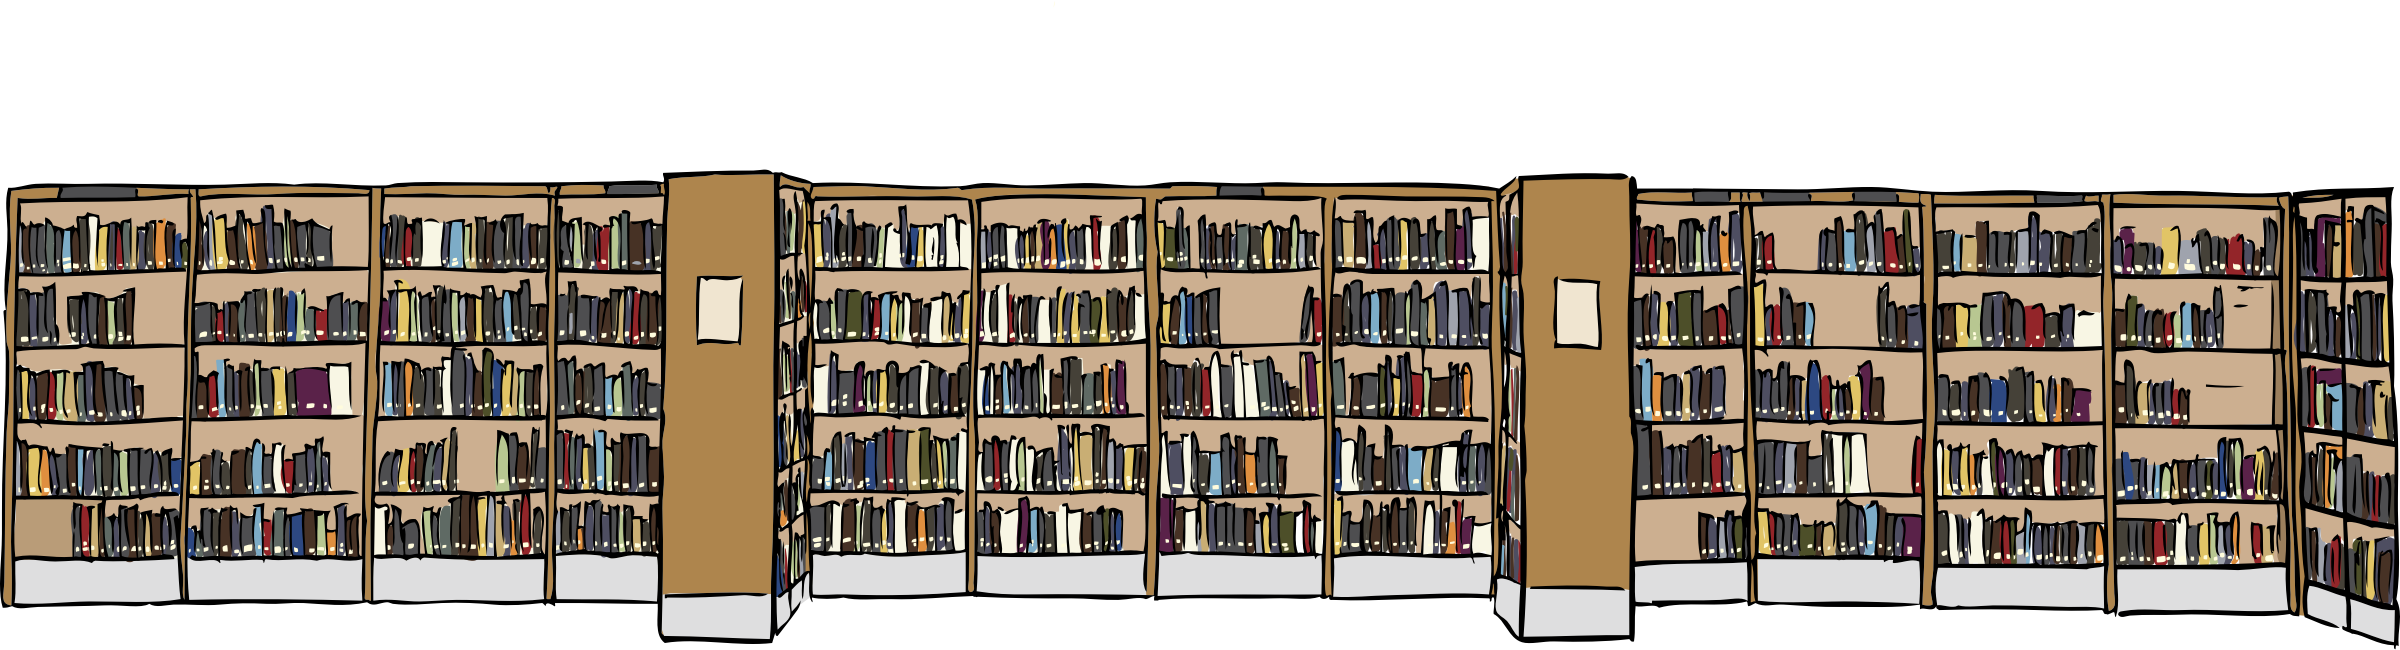 Library icons png free. Librarian clipart bookshelve